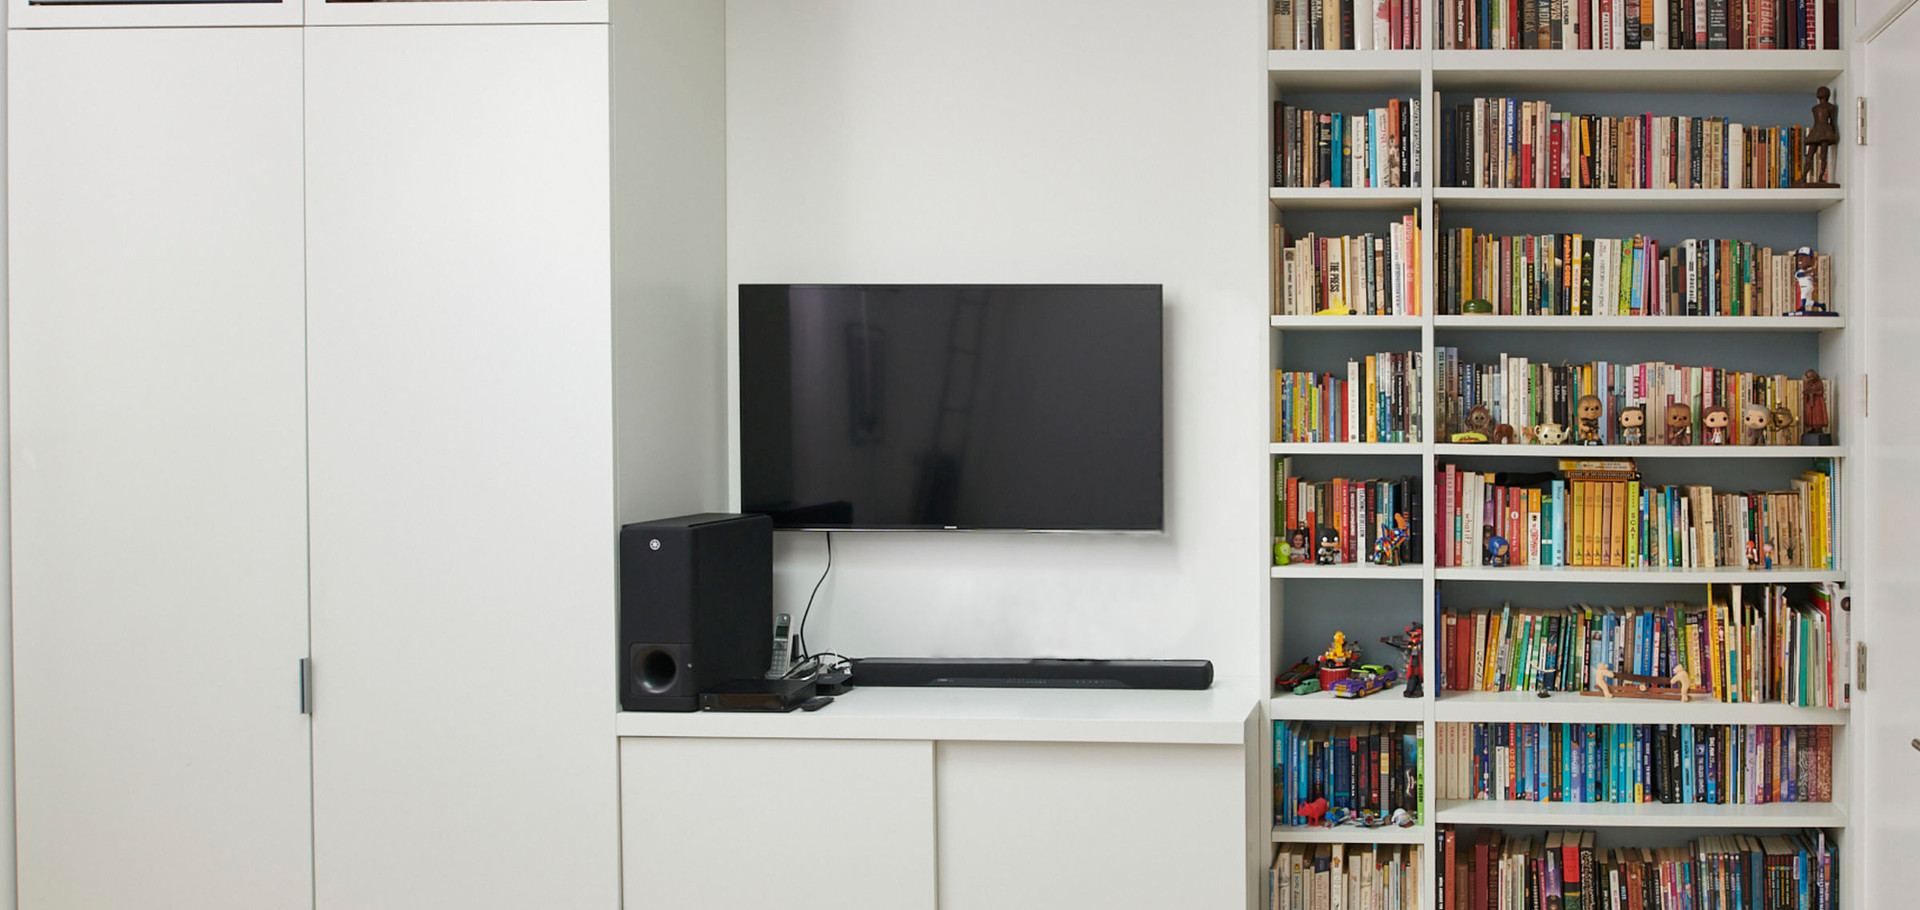 A simple straightforward living room / den unit optimizing storage.